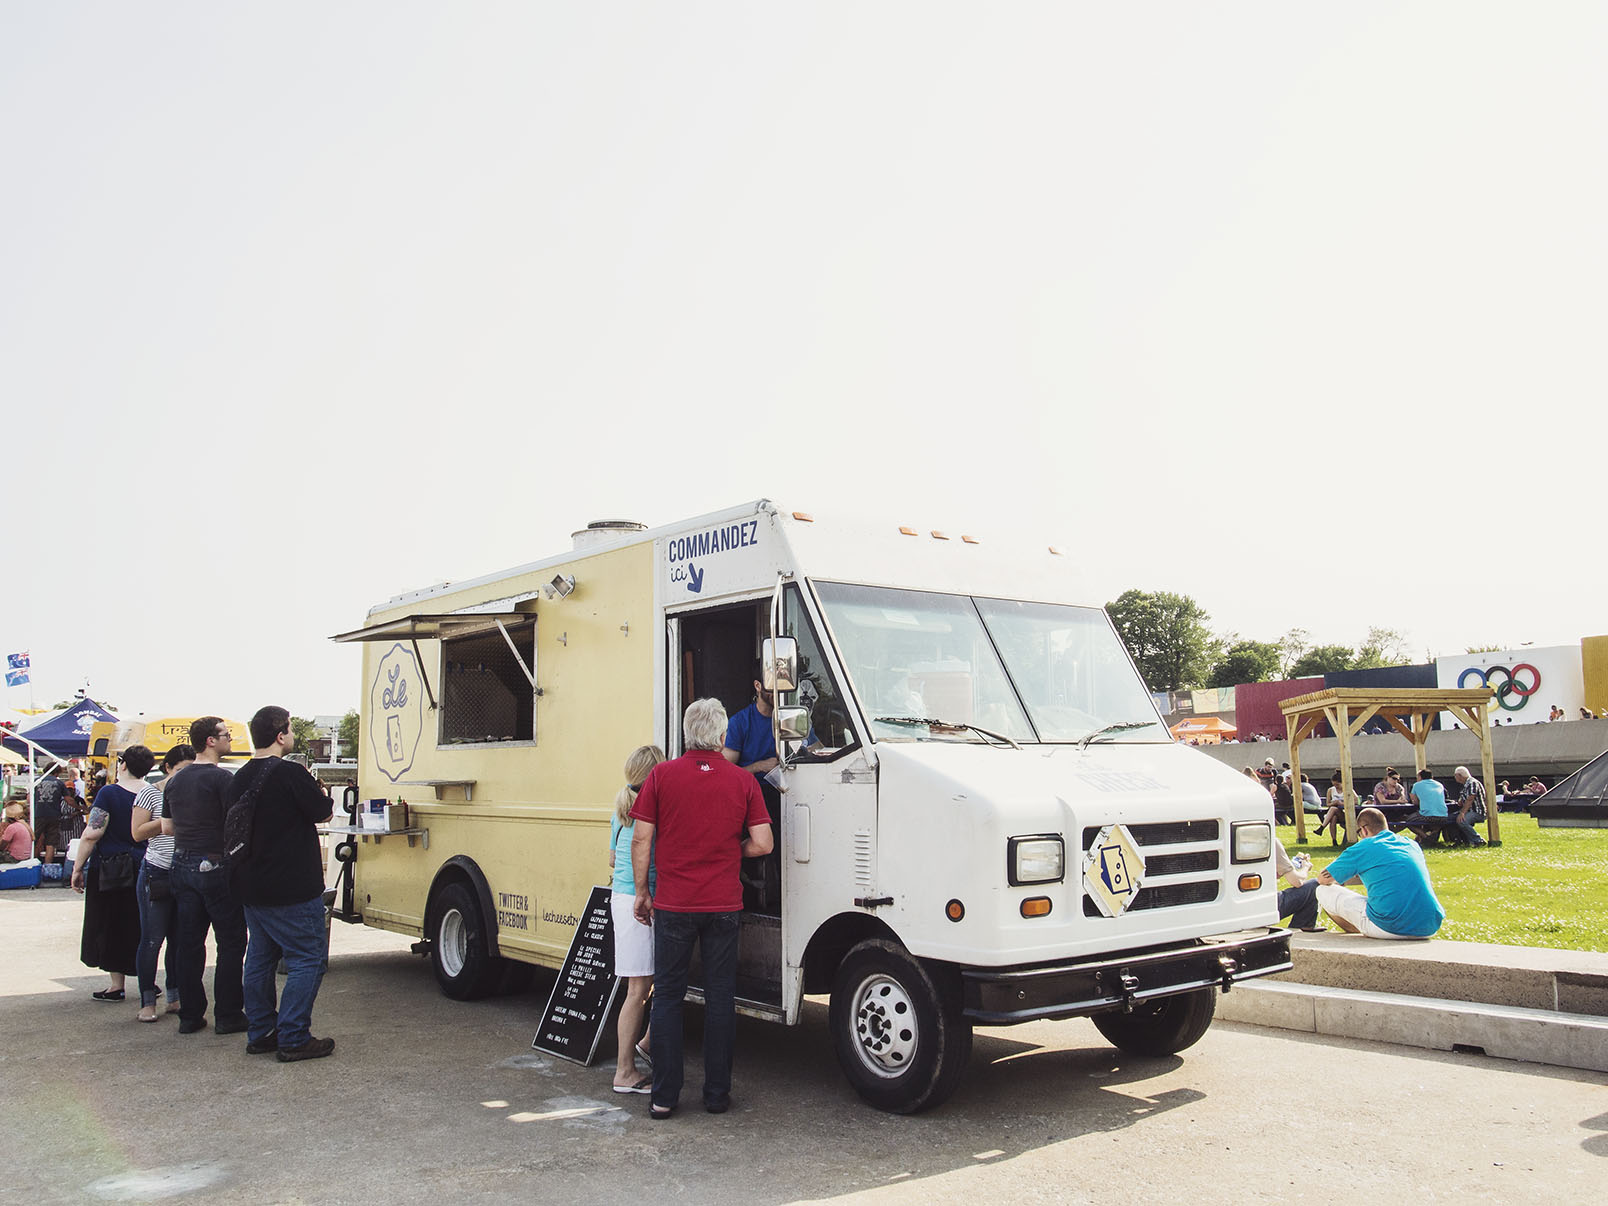 Le Cheese Truck